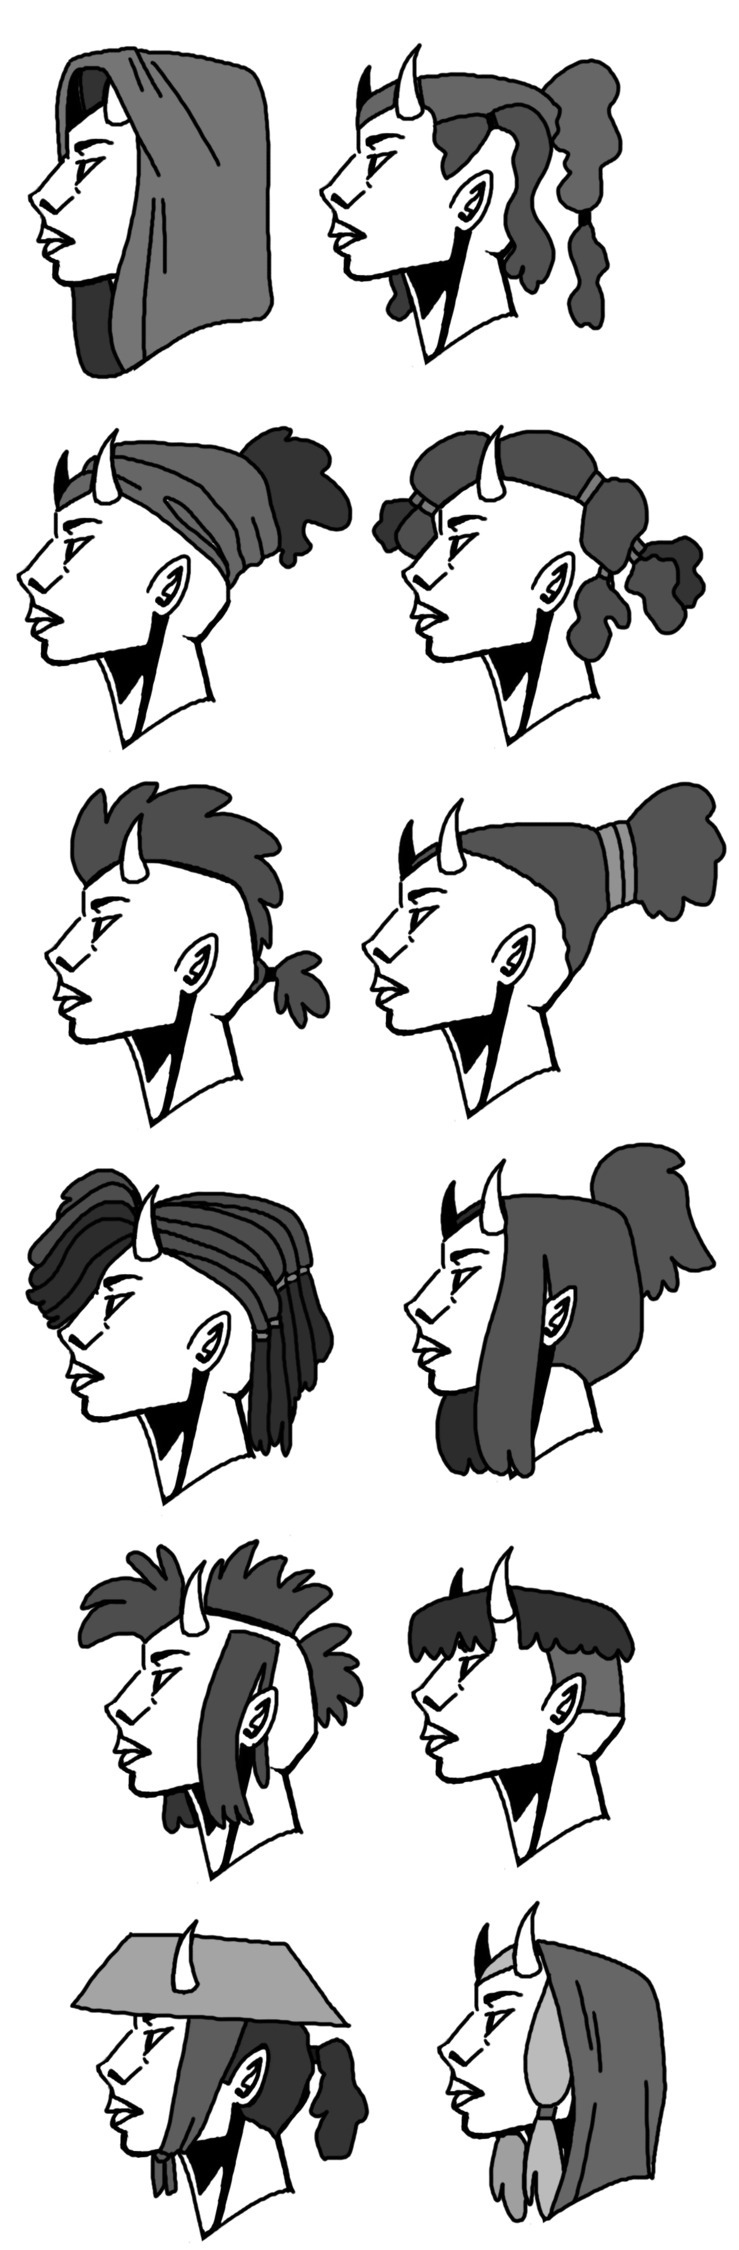 Doodled hair ideas yesterday - artwork - emkdraws | ello